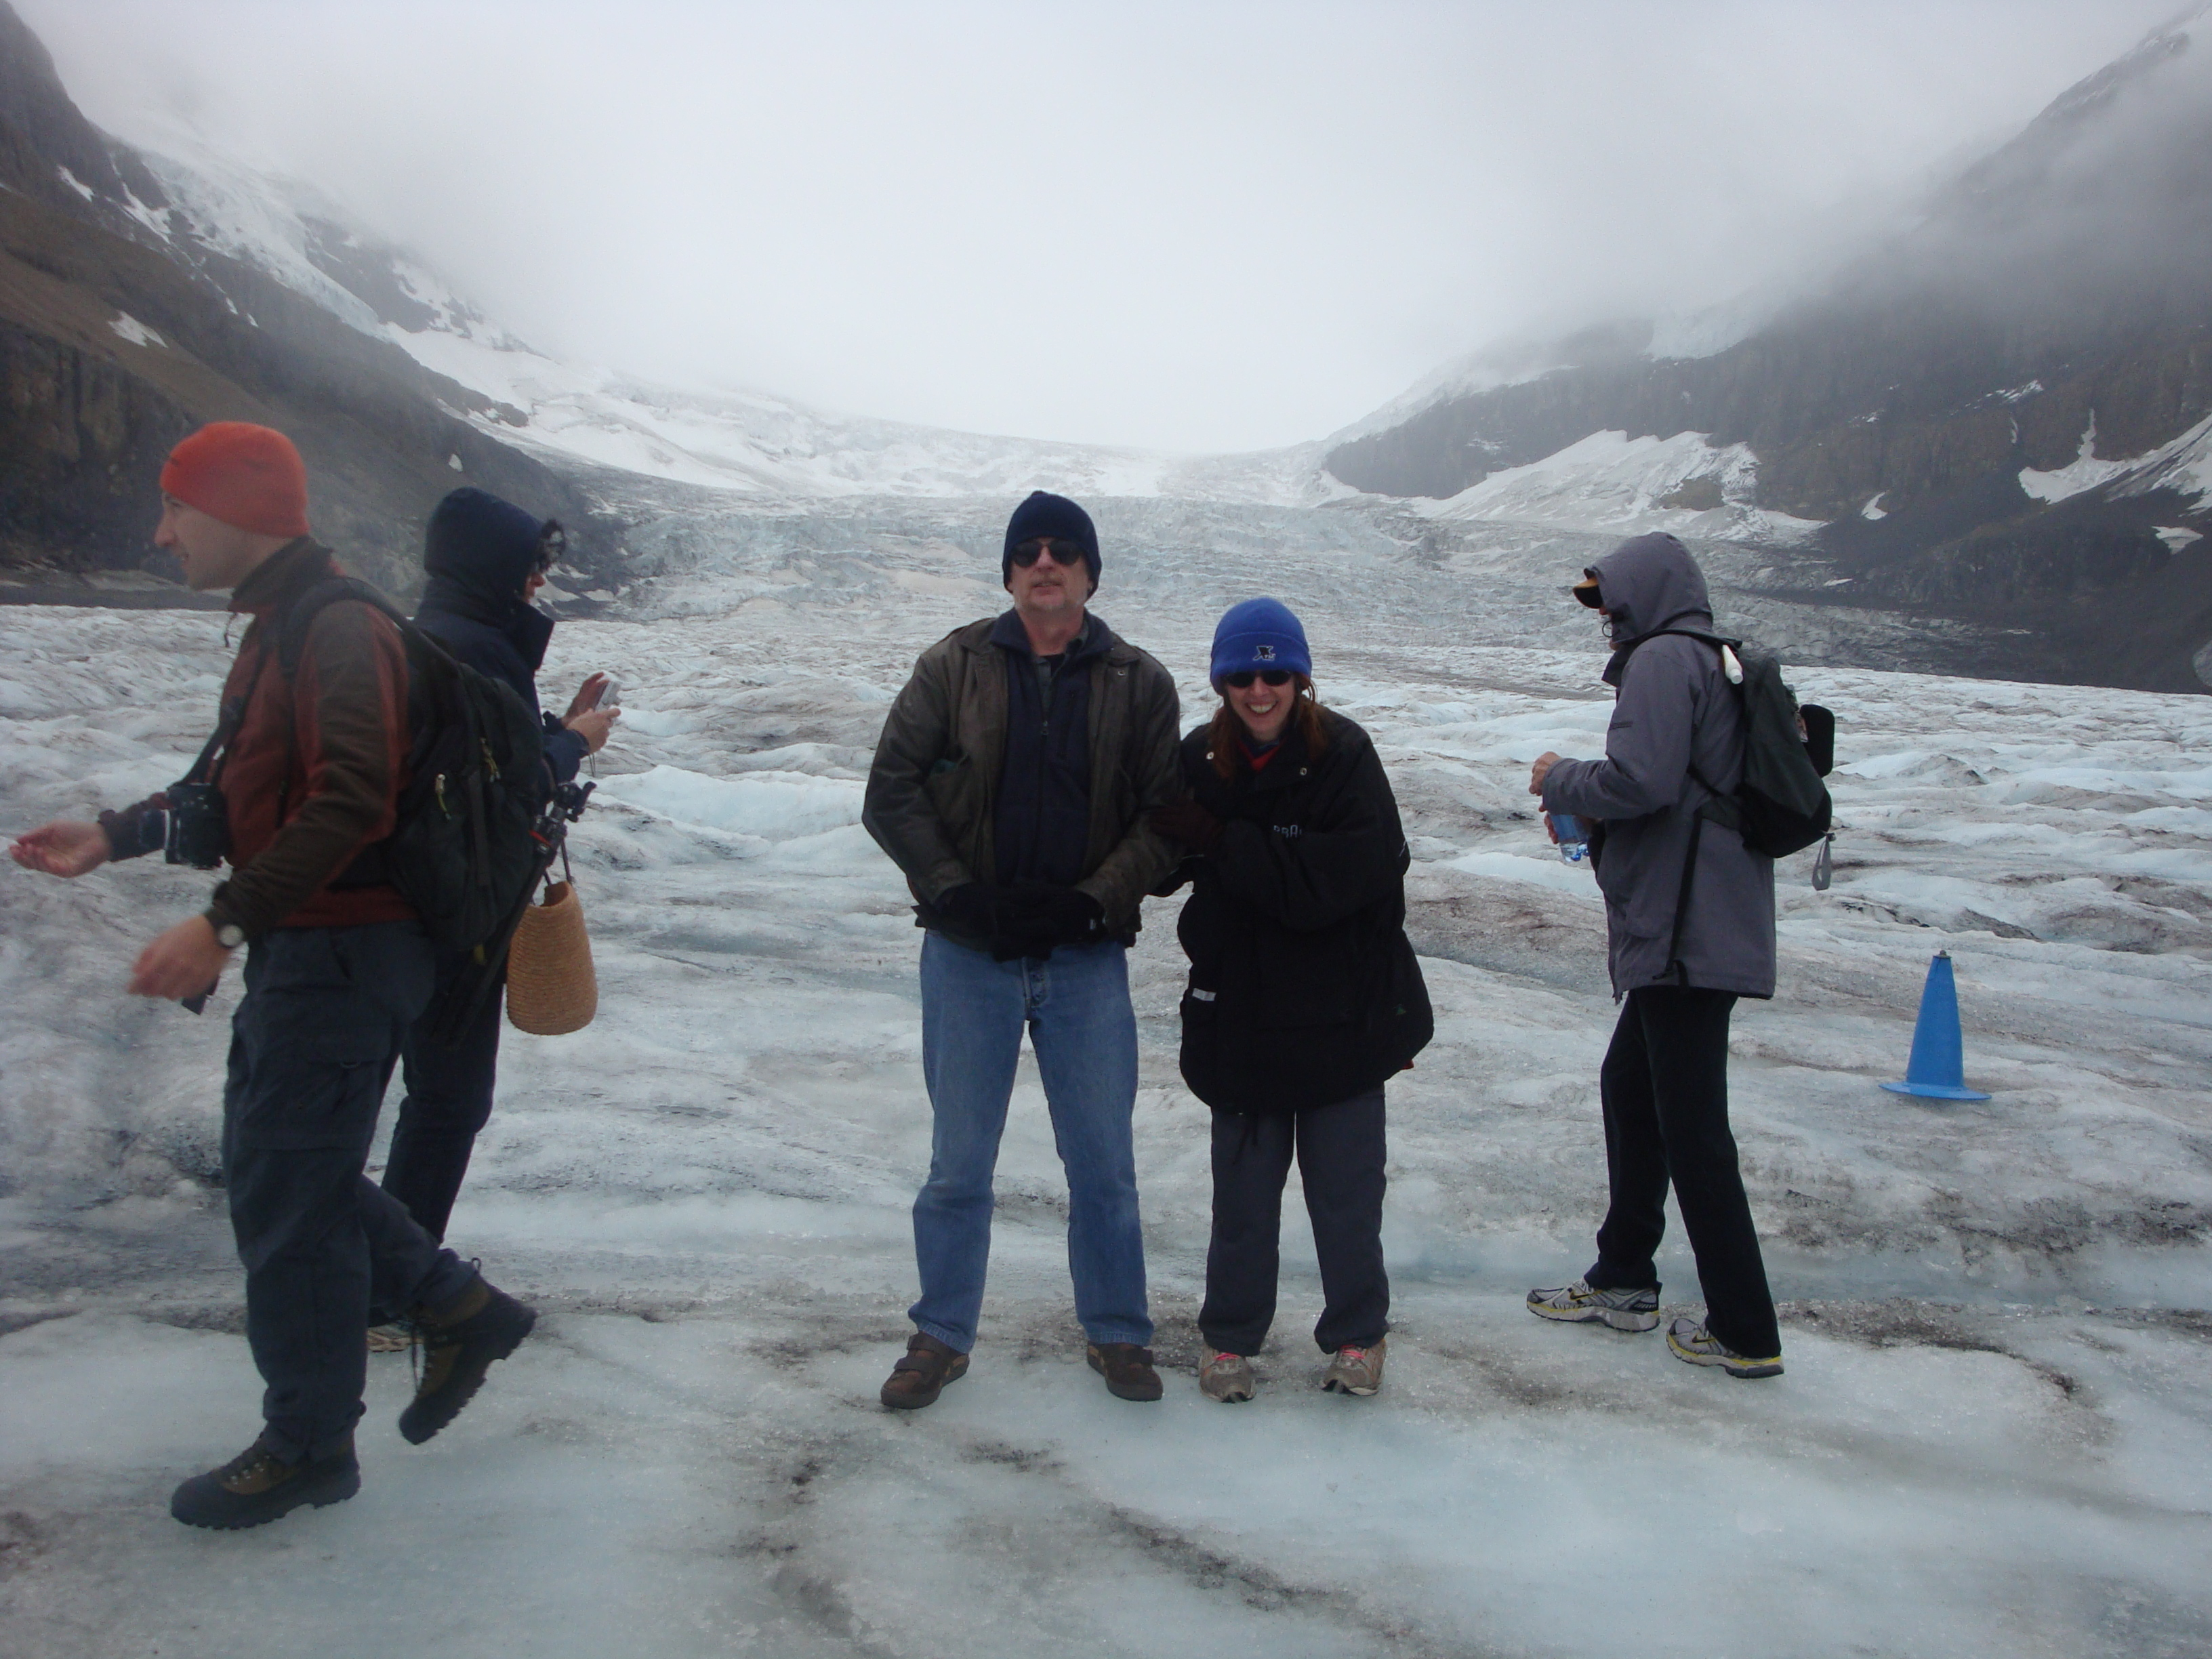 That's Terry and me at Lake Louise on the glacier....so....been places where you'd IMAGINE you'd see snow fall....but no....